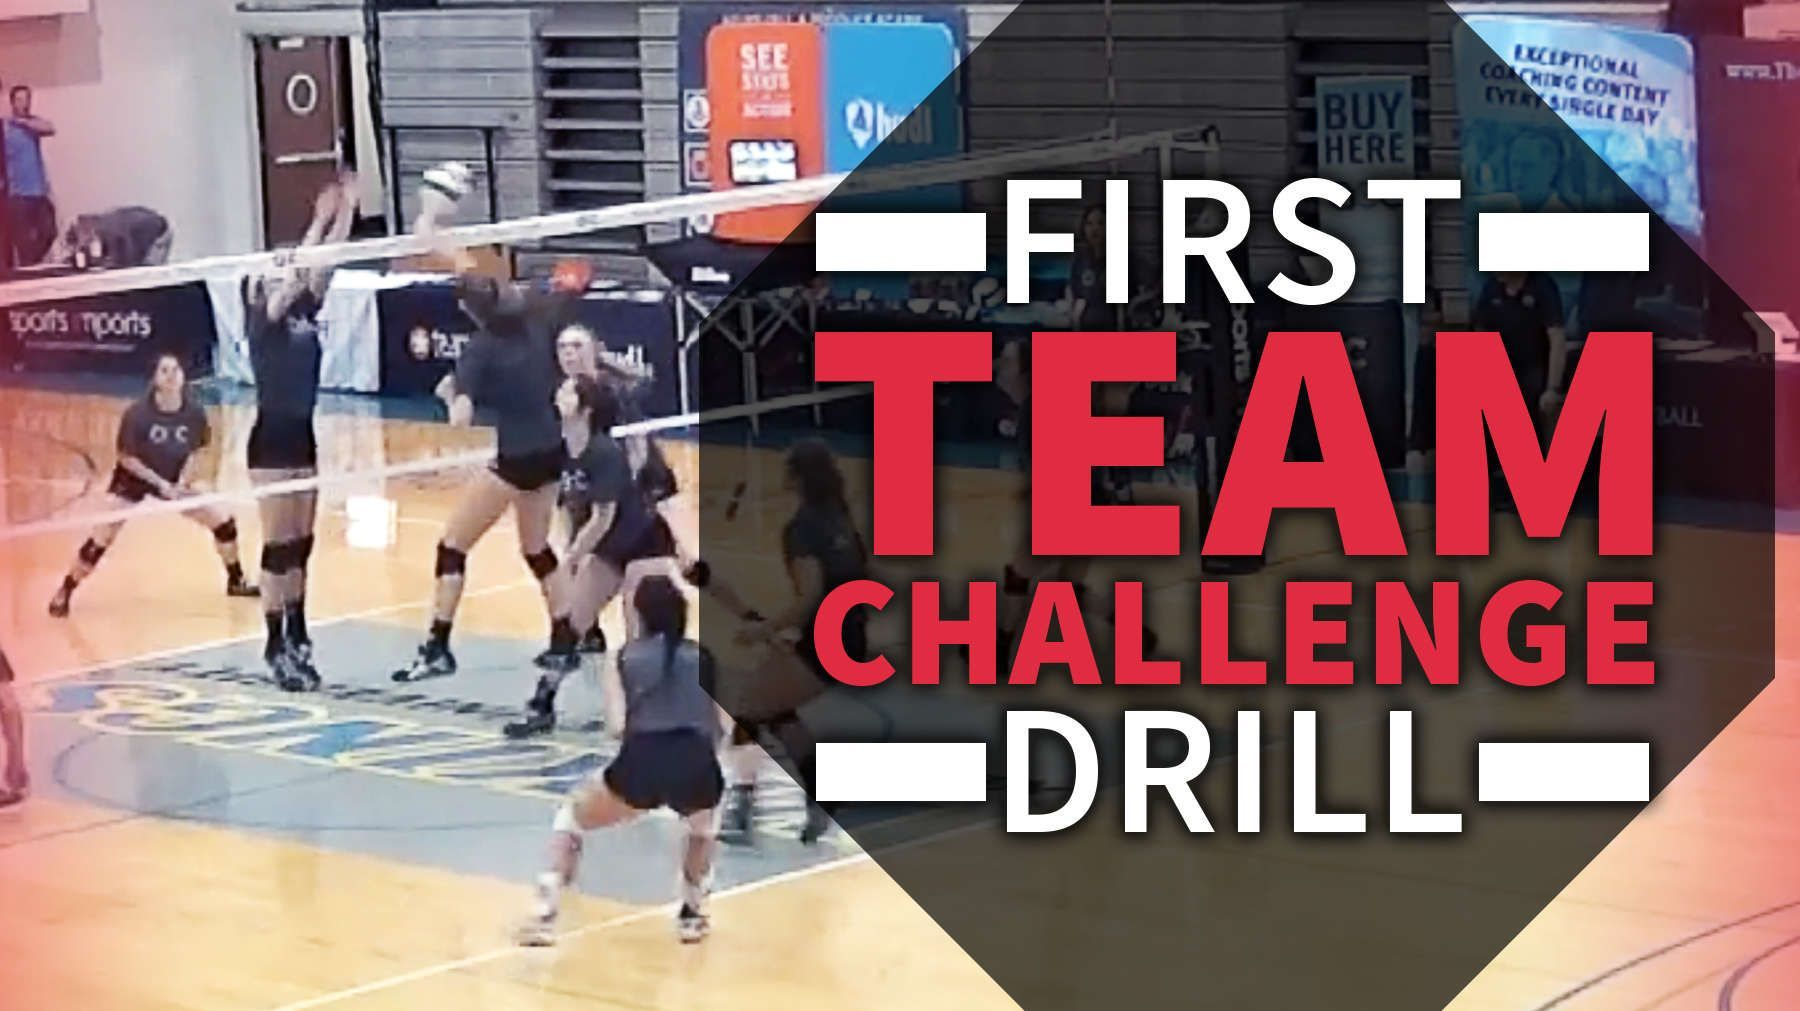 Prerequisites Youreserving Volleyball Aquatinted Skilljump Something Mserving Exciting Serving Started Things Before There Serve Youretip 2020 Voleybol